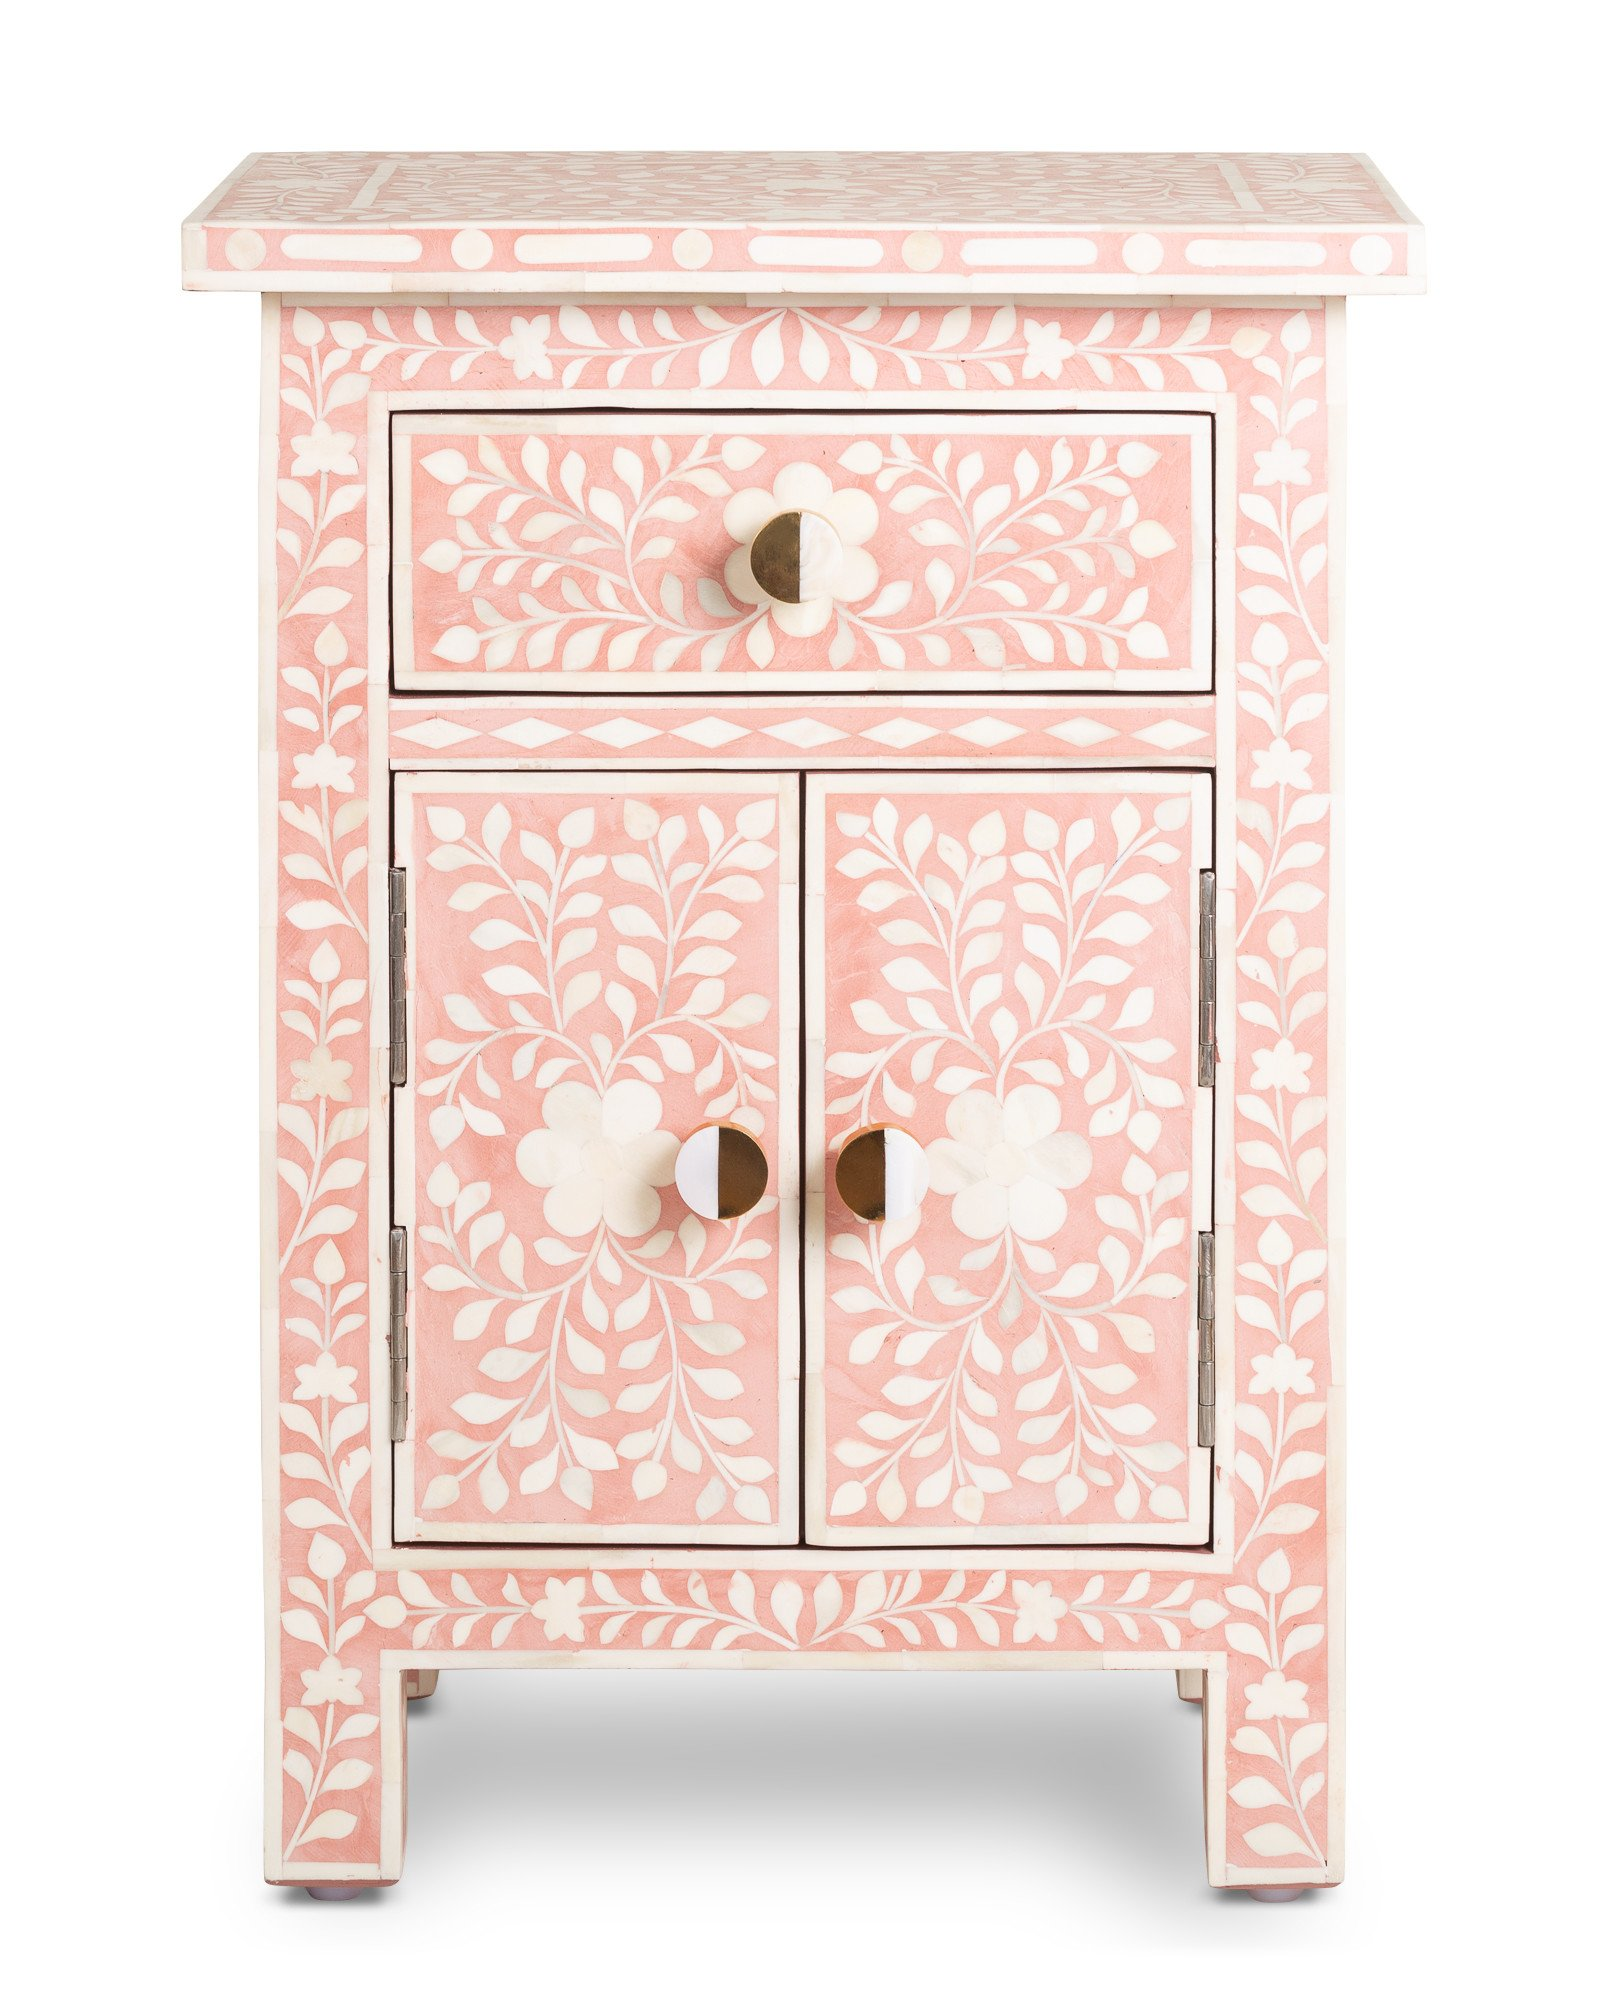 Lohko Floral Inlay Pink Bedside Table